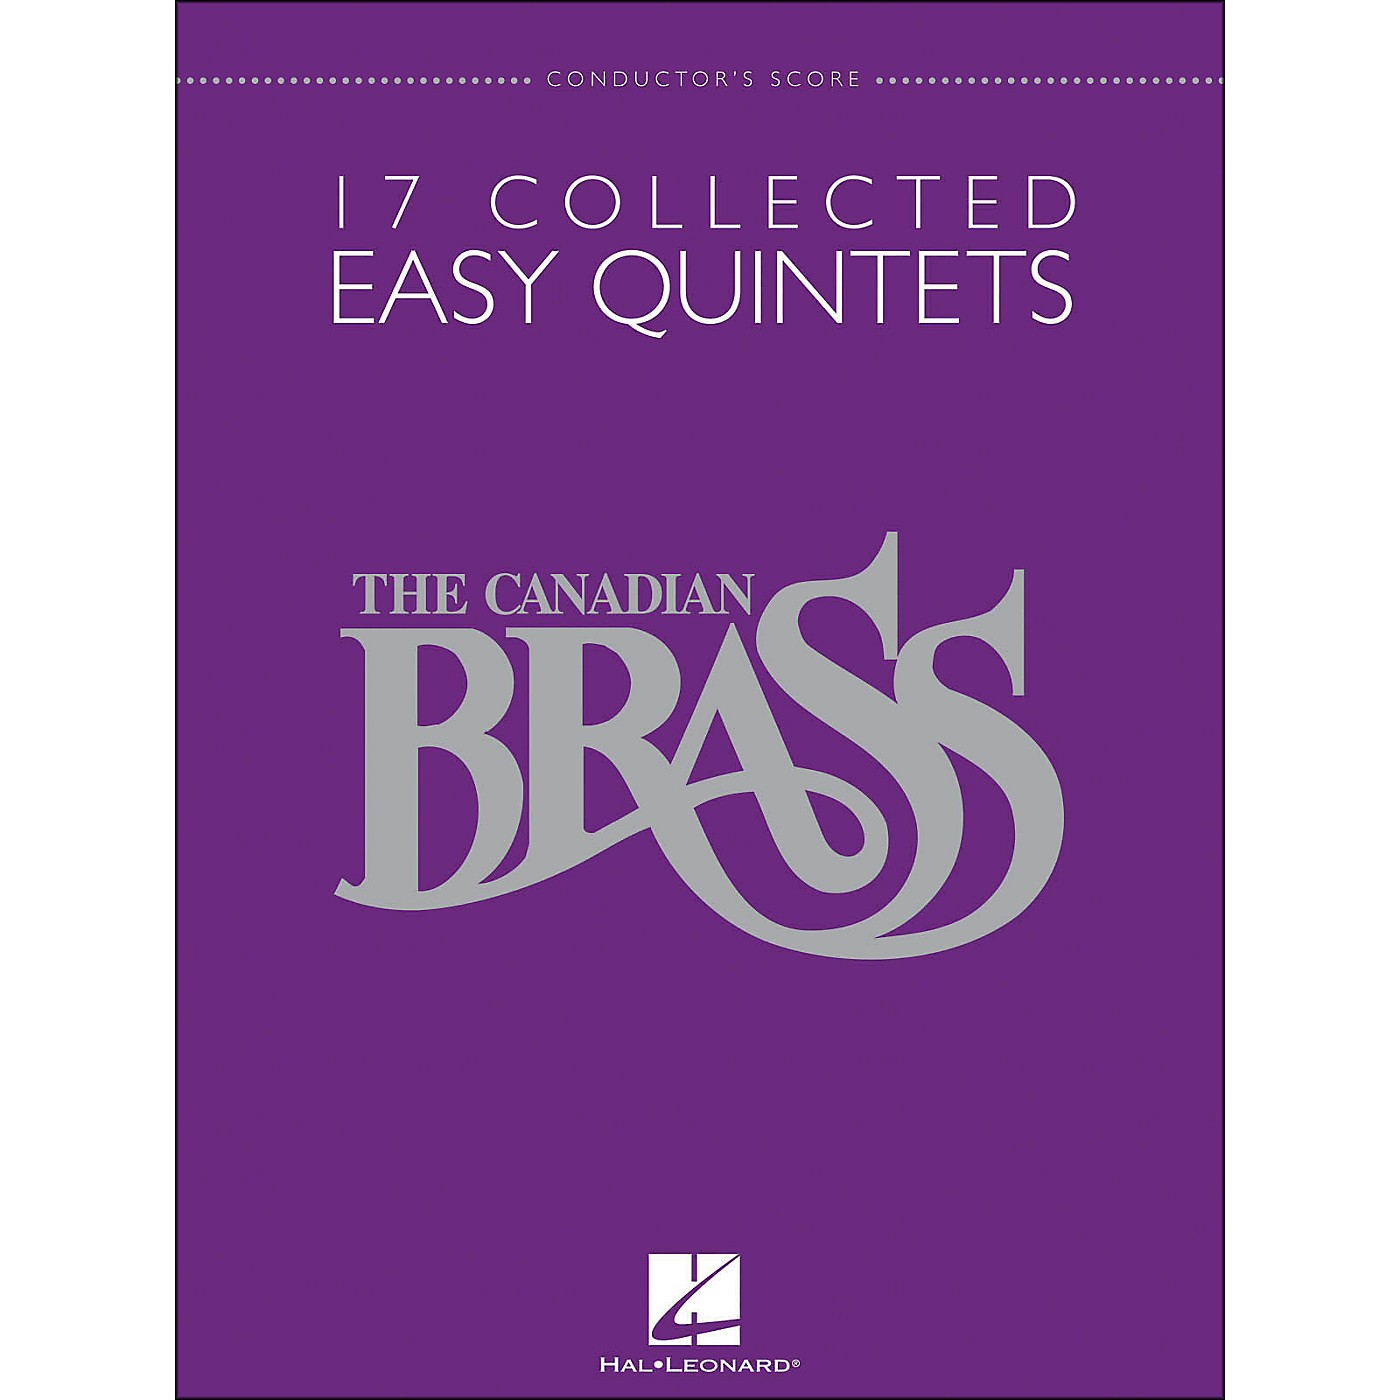 Hal Leonard The Canadian Brass: 17 Collected Easy Quintets - Conductor's Score - Brass Quintet thumbnail